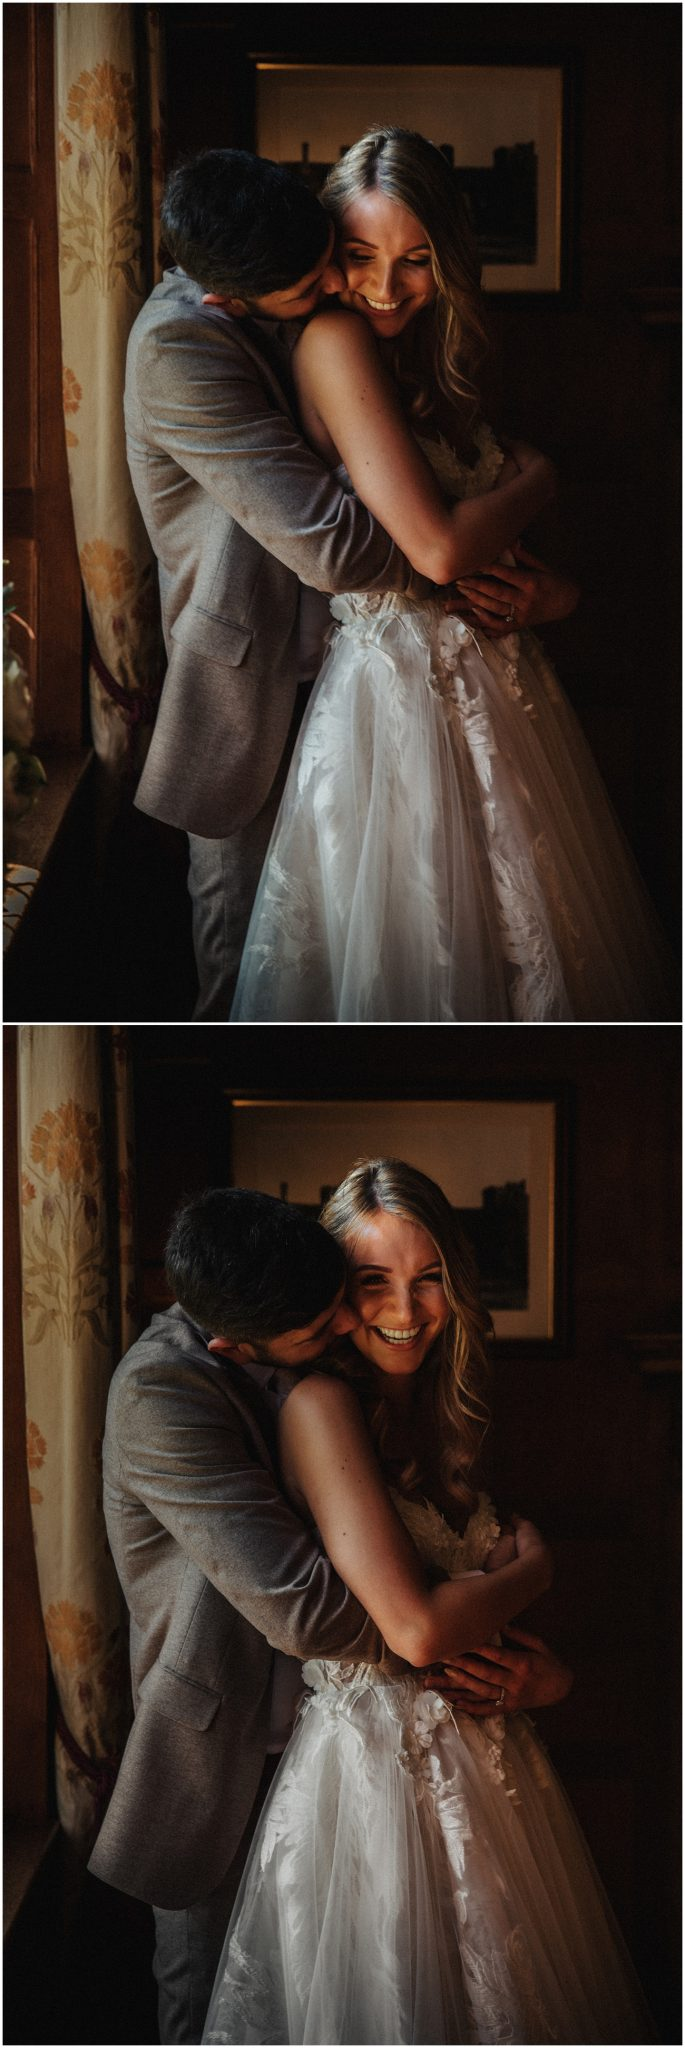 Bride and groom hold each other and laugh